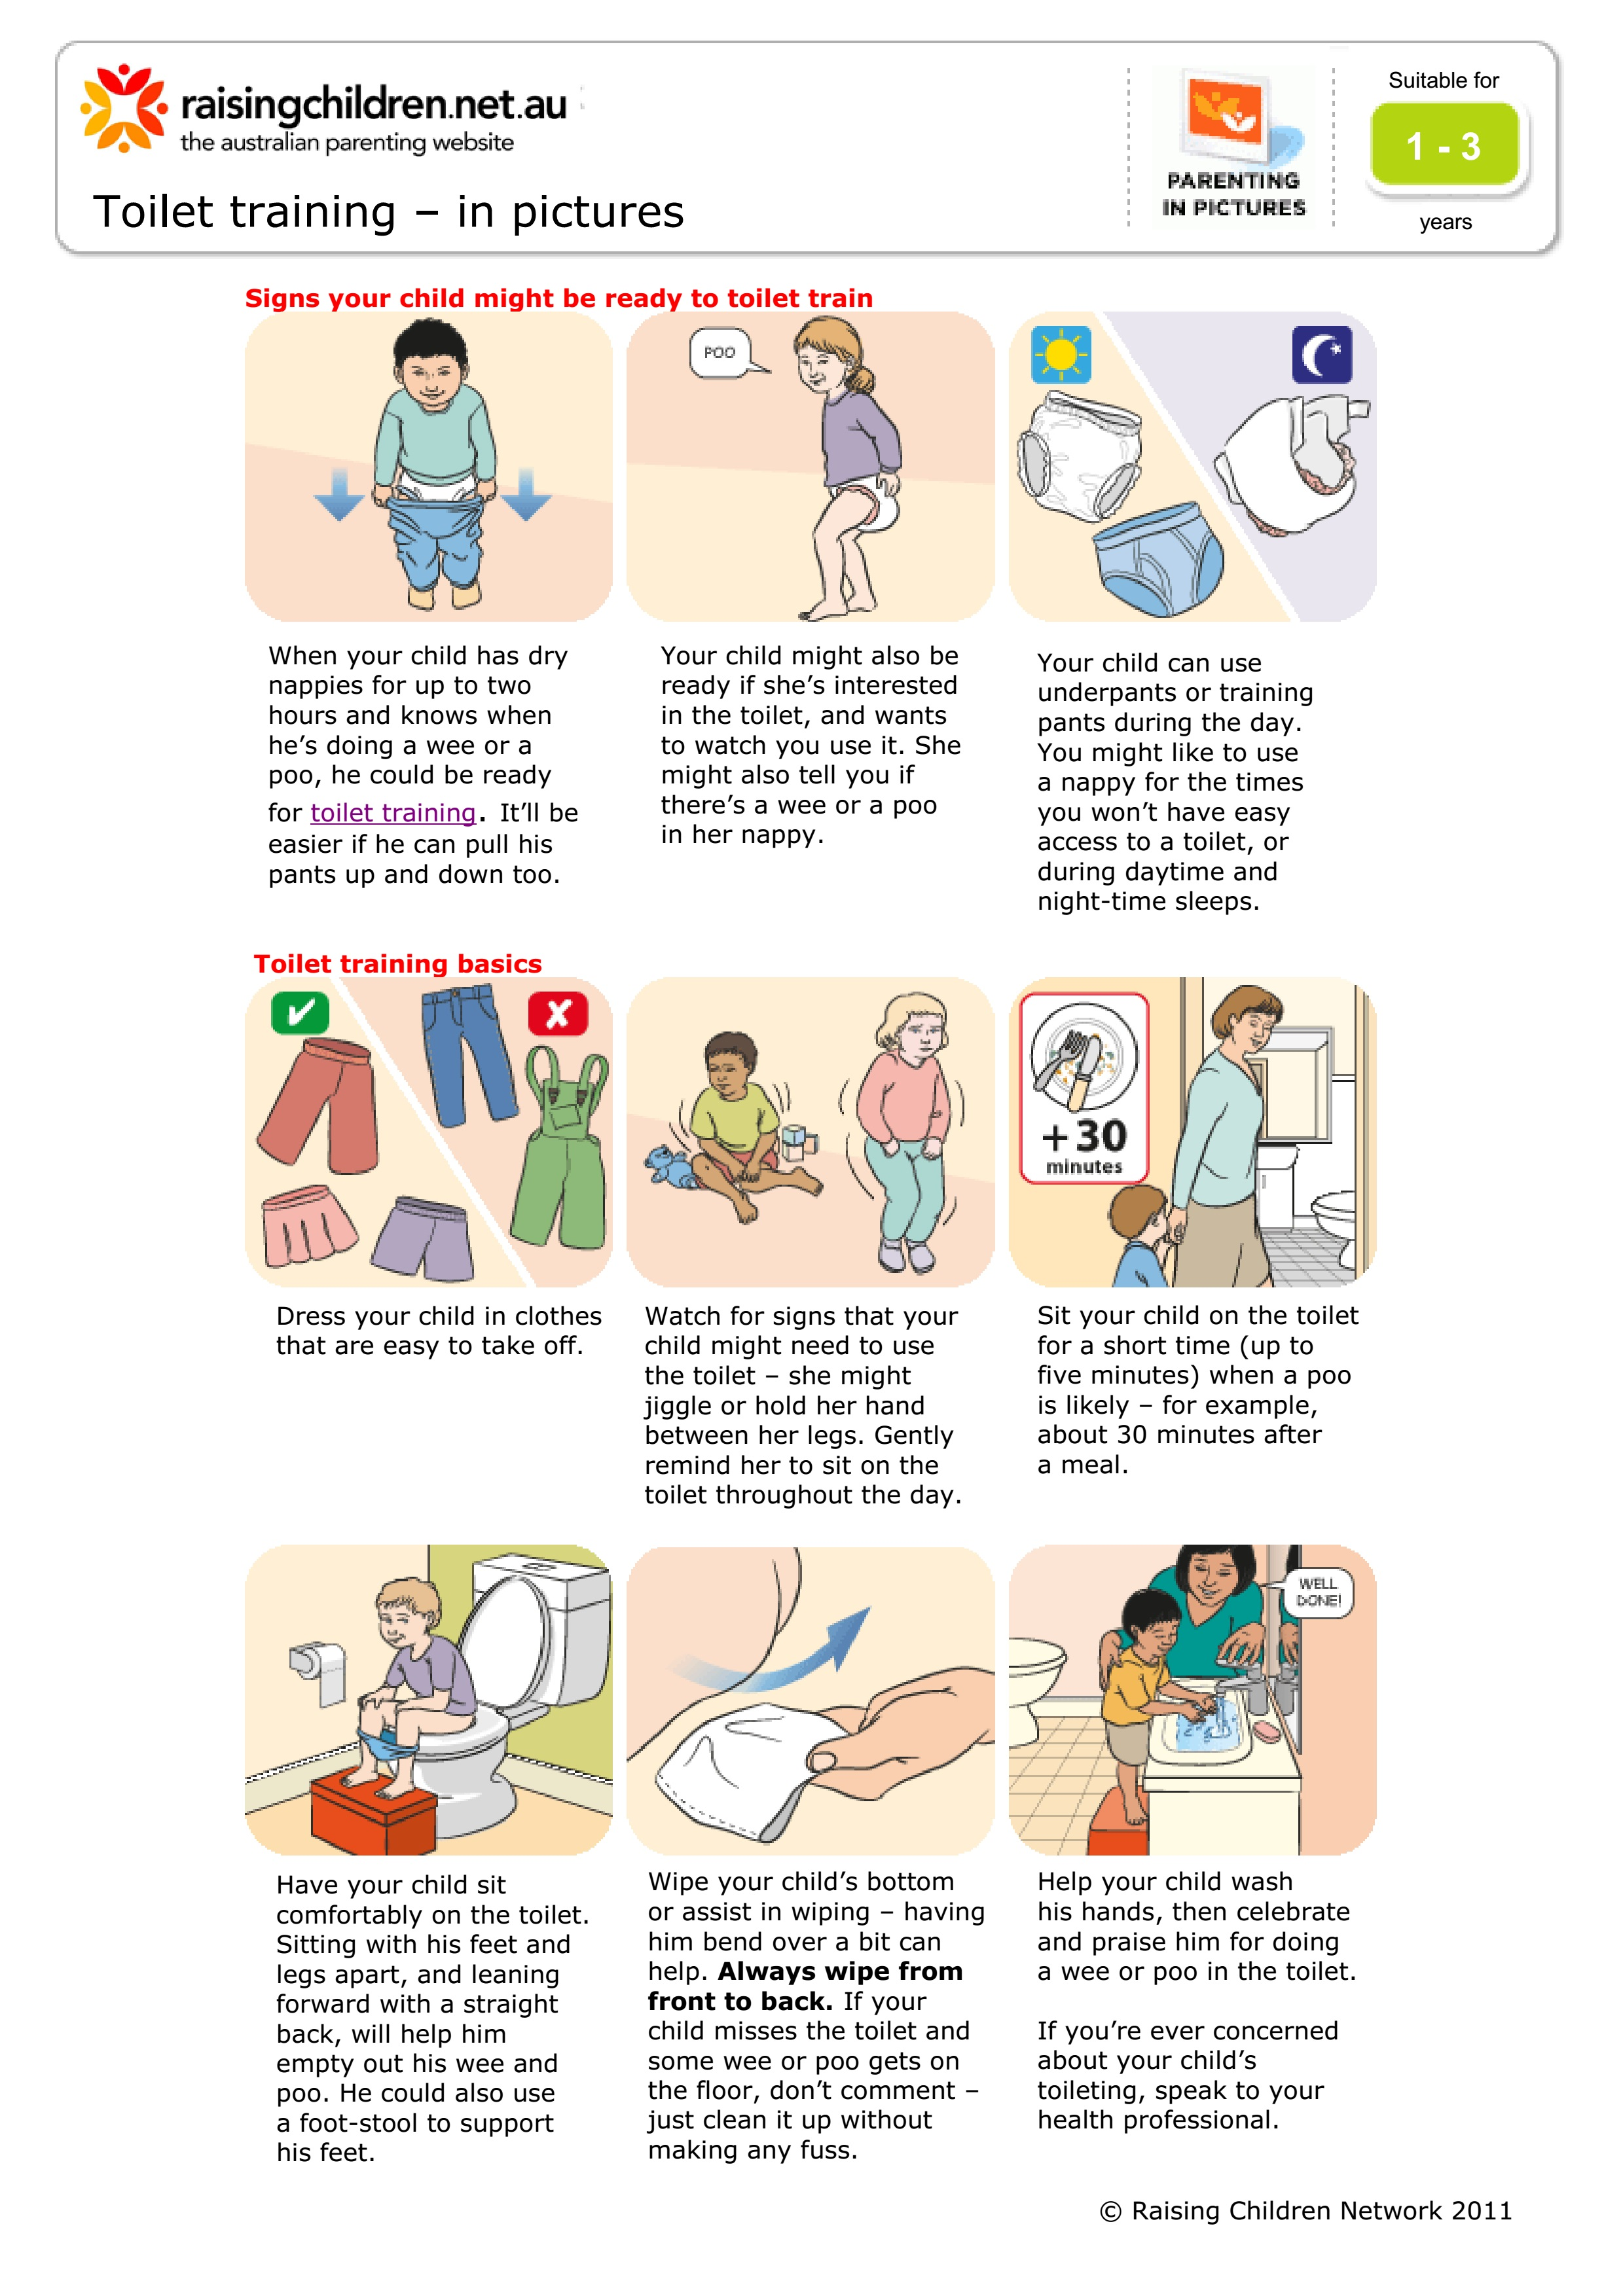 Tips Dan Trik Toilet Training Andinaseptiarani